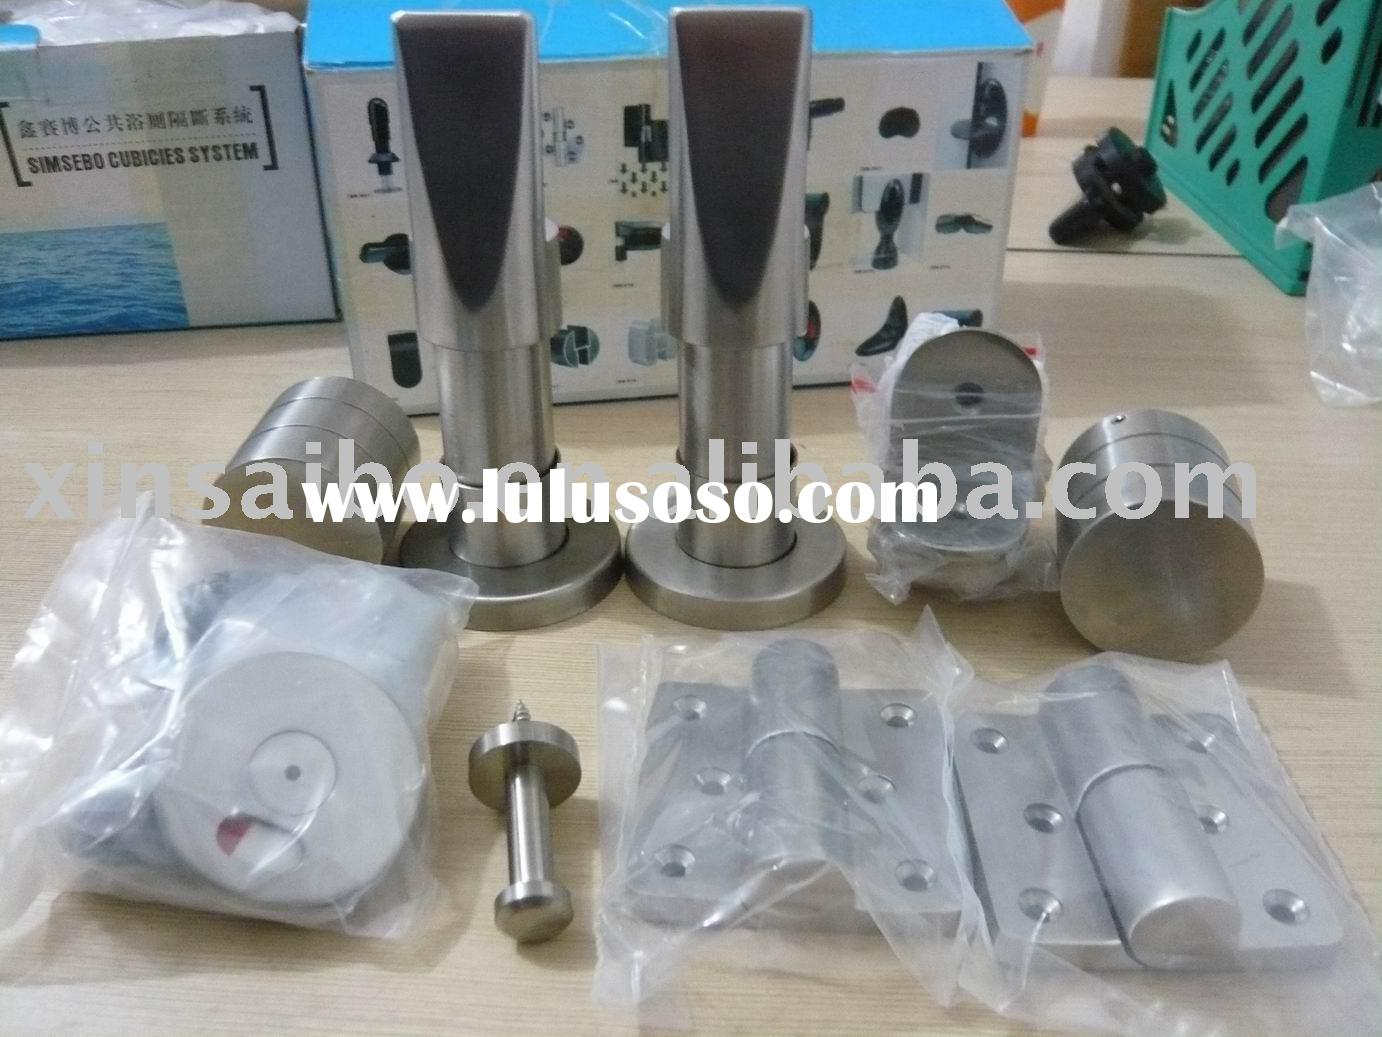 Stainless Steel #304 Accessories for Toilet Partition